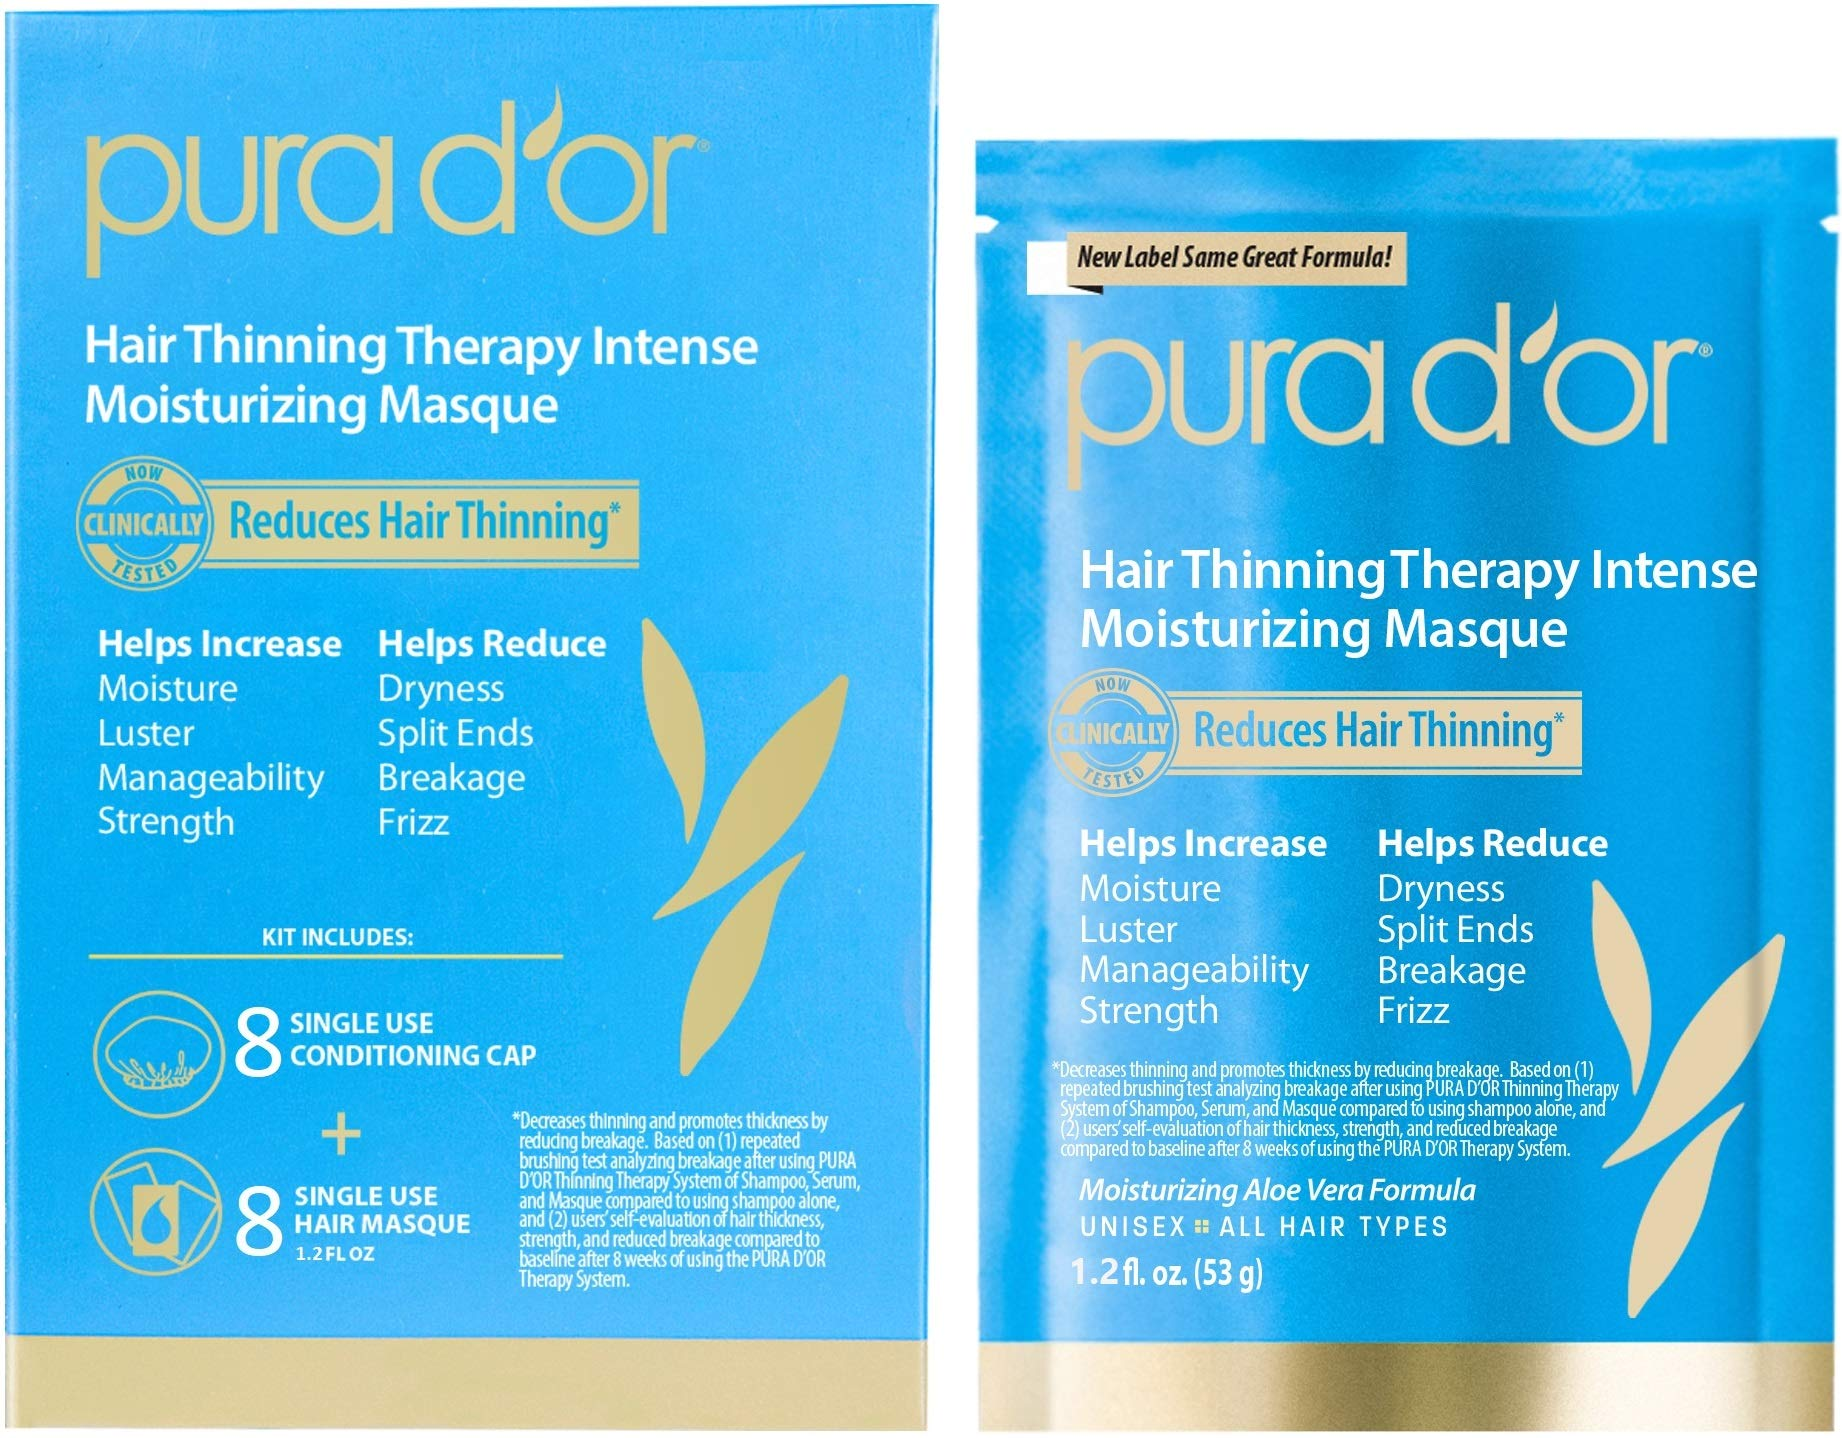 PURA D'OR Hair Thinning Therapy Intense Moisturizing Masque (8-Pack) Deeply Hydrating Treatment Mask, Infused with Natural Ingredients, For All Hair Types, Men & Women (Packaging may vary) by PURA D'OR